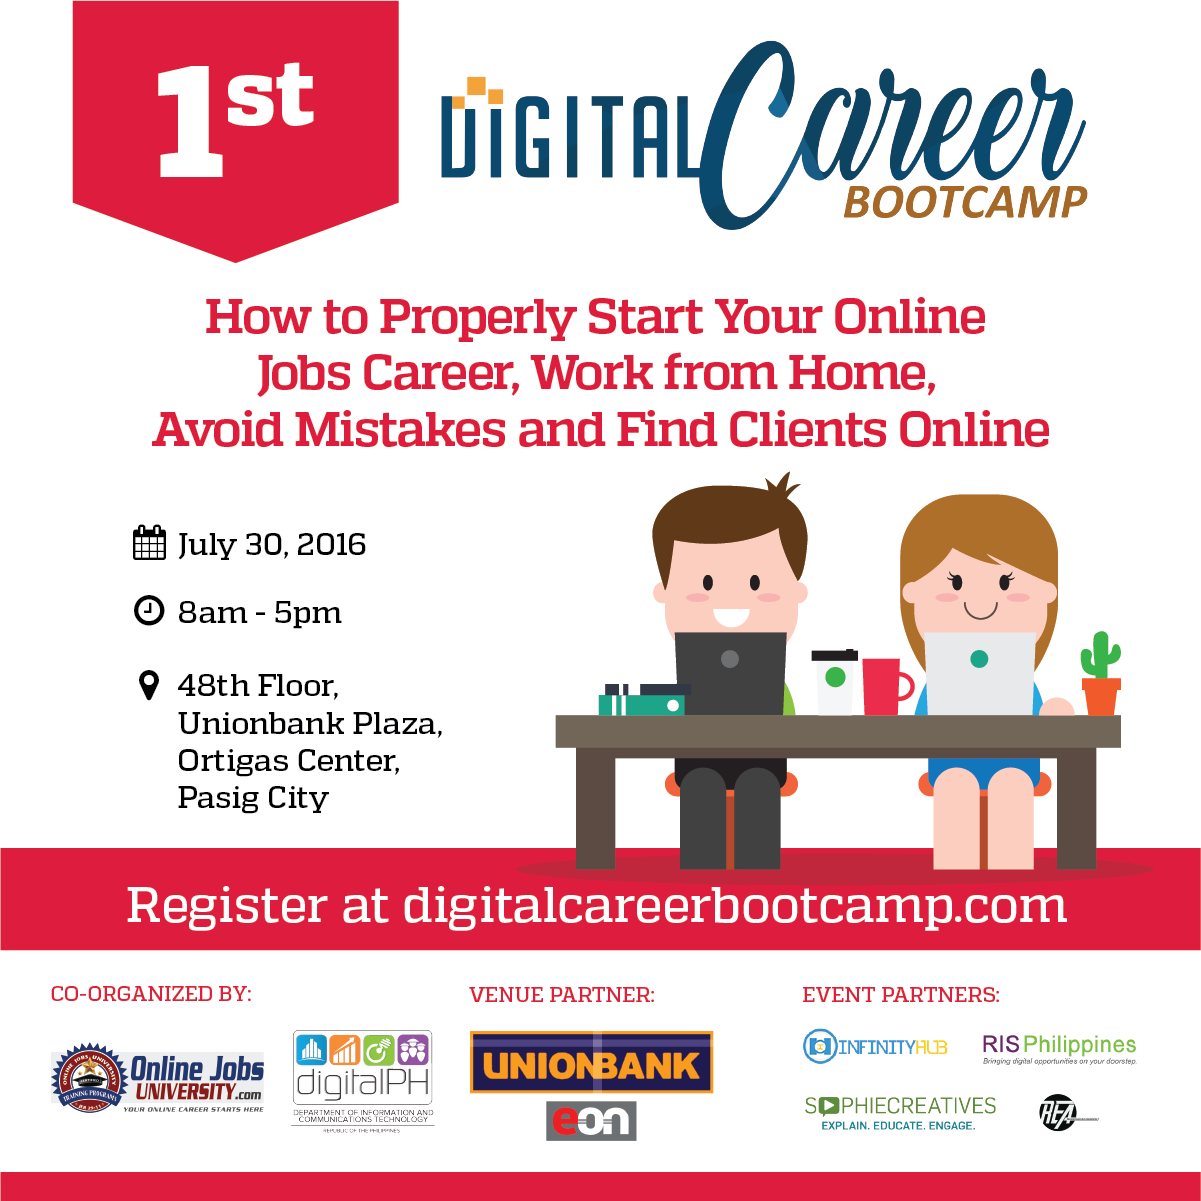 Dict Co Organize 1st Digital Career Bootcamp To Promote Online Jobs